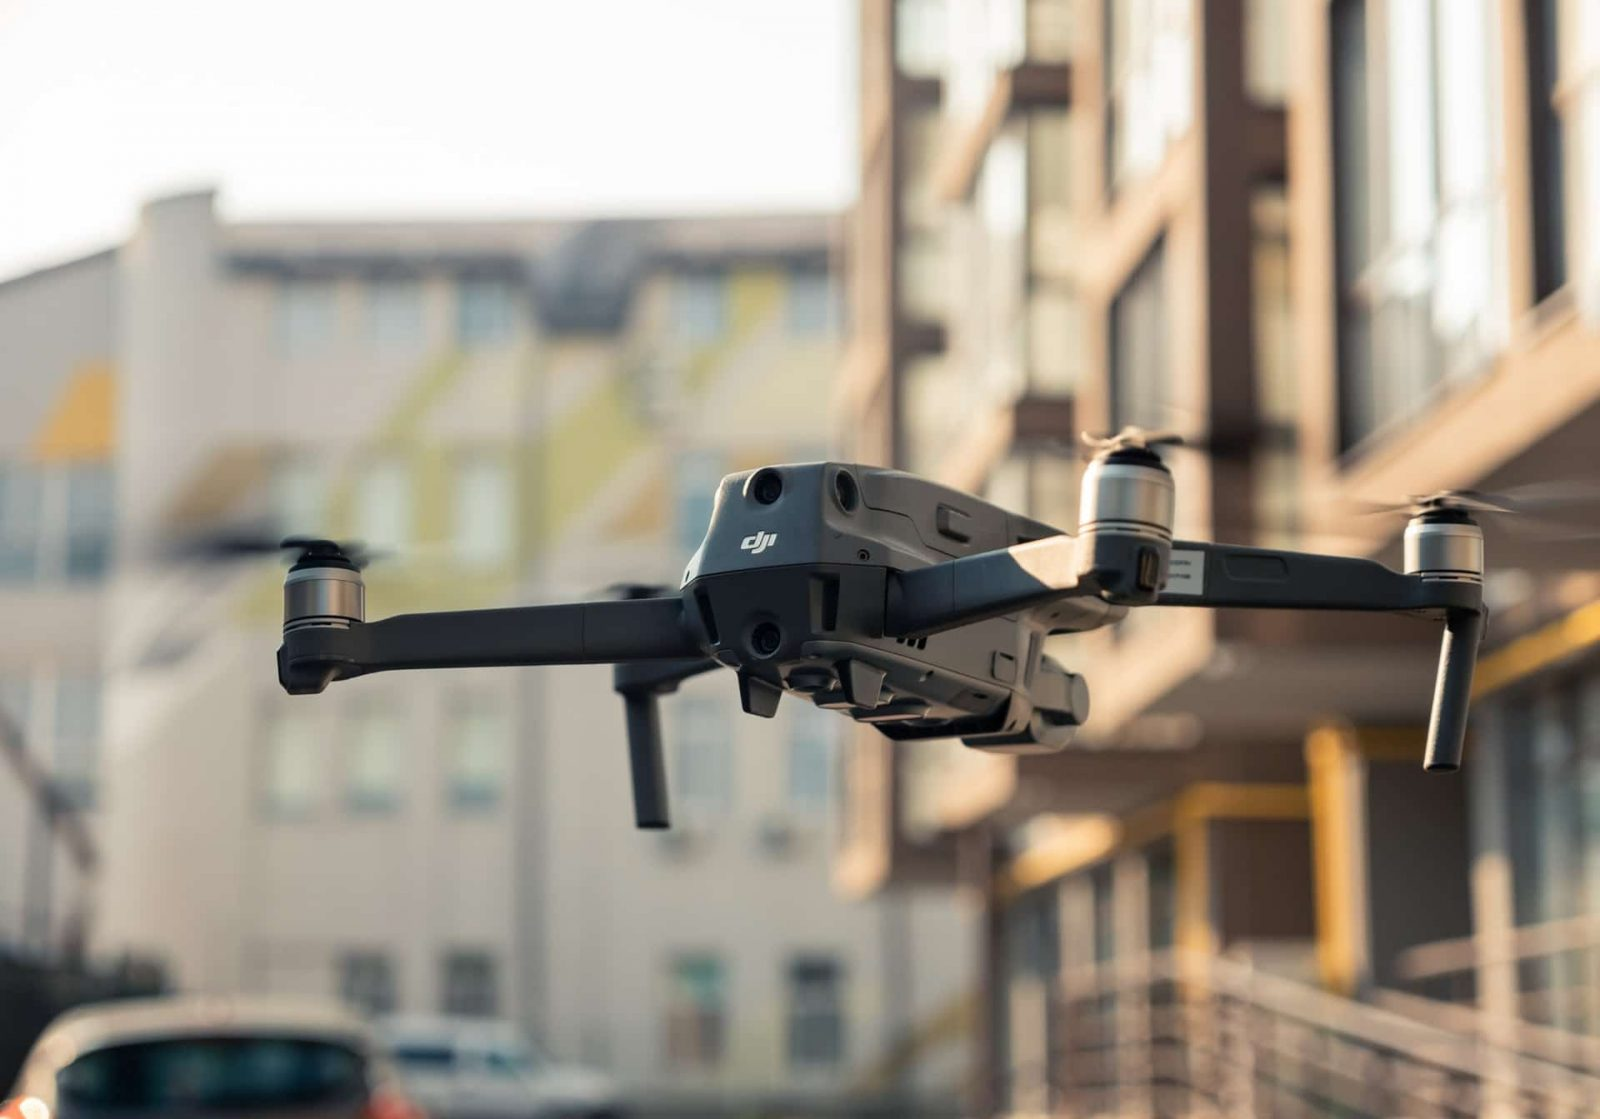 How To Make Money With A Drone? - A Guide To Some Easy Cash